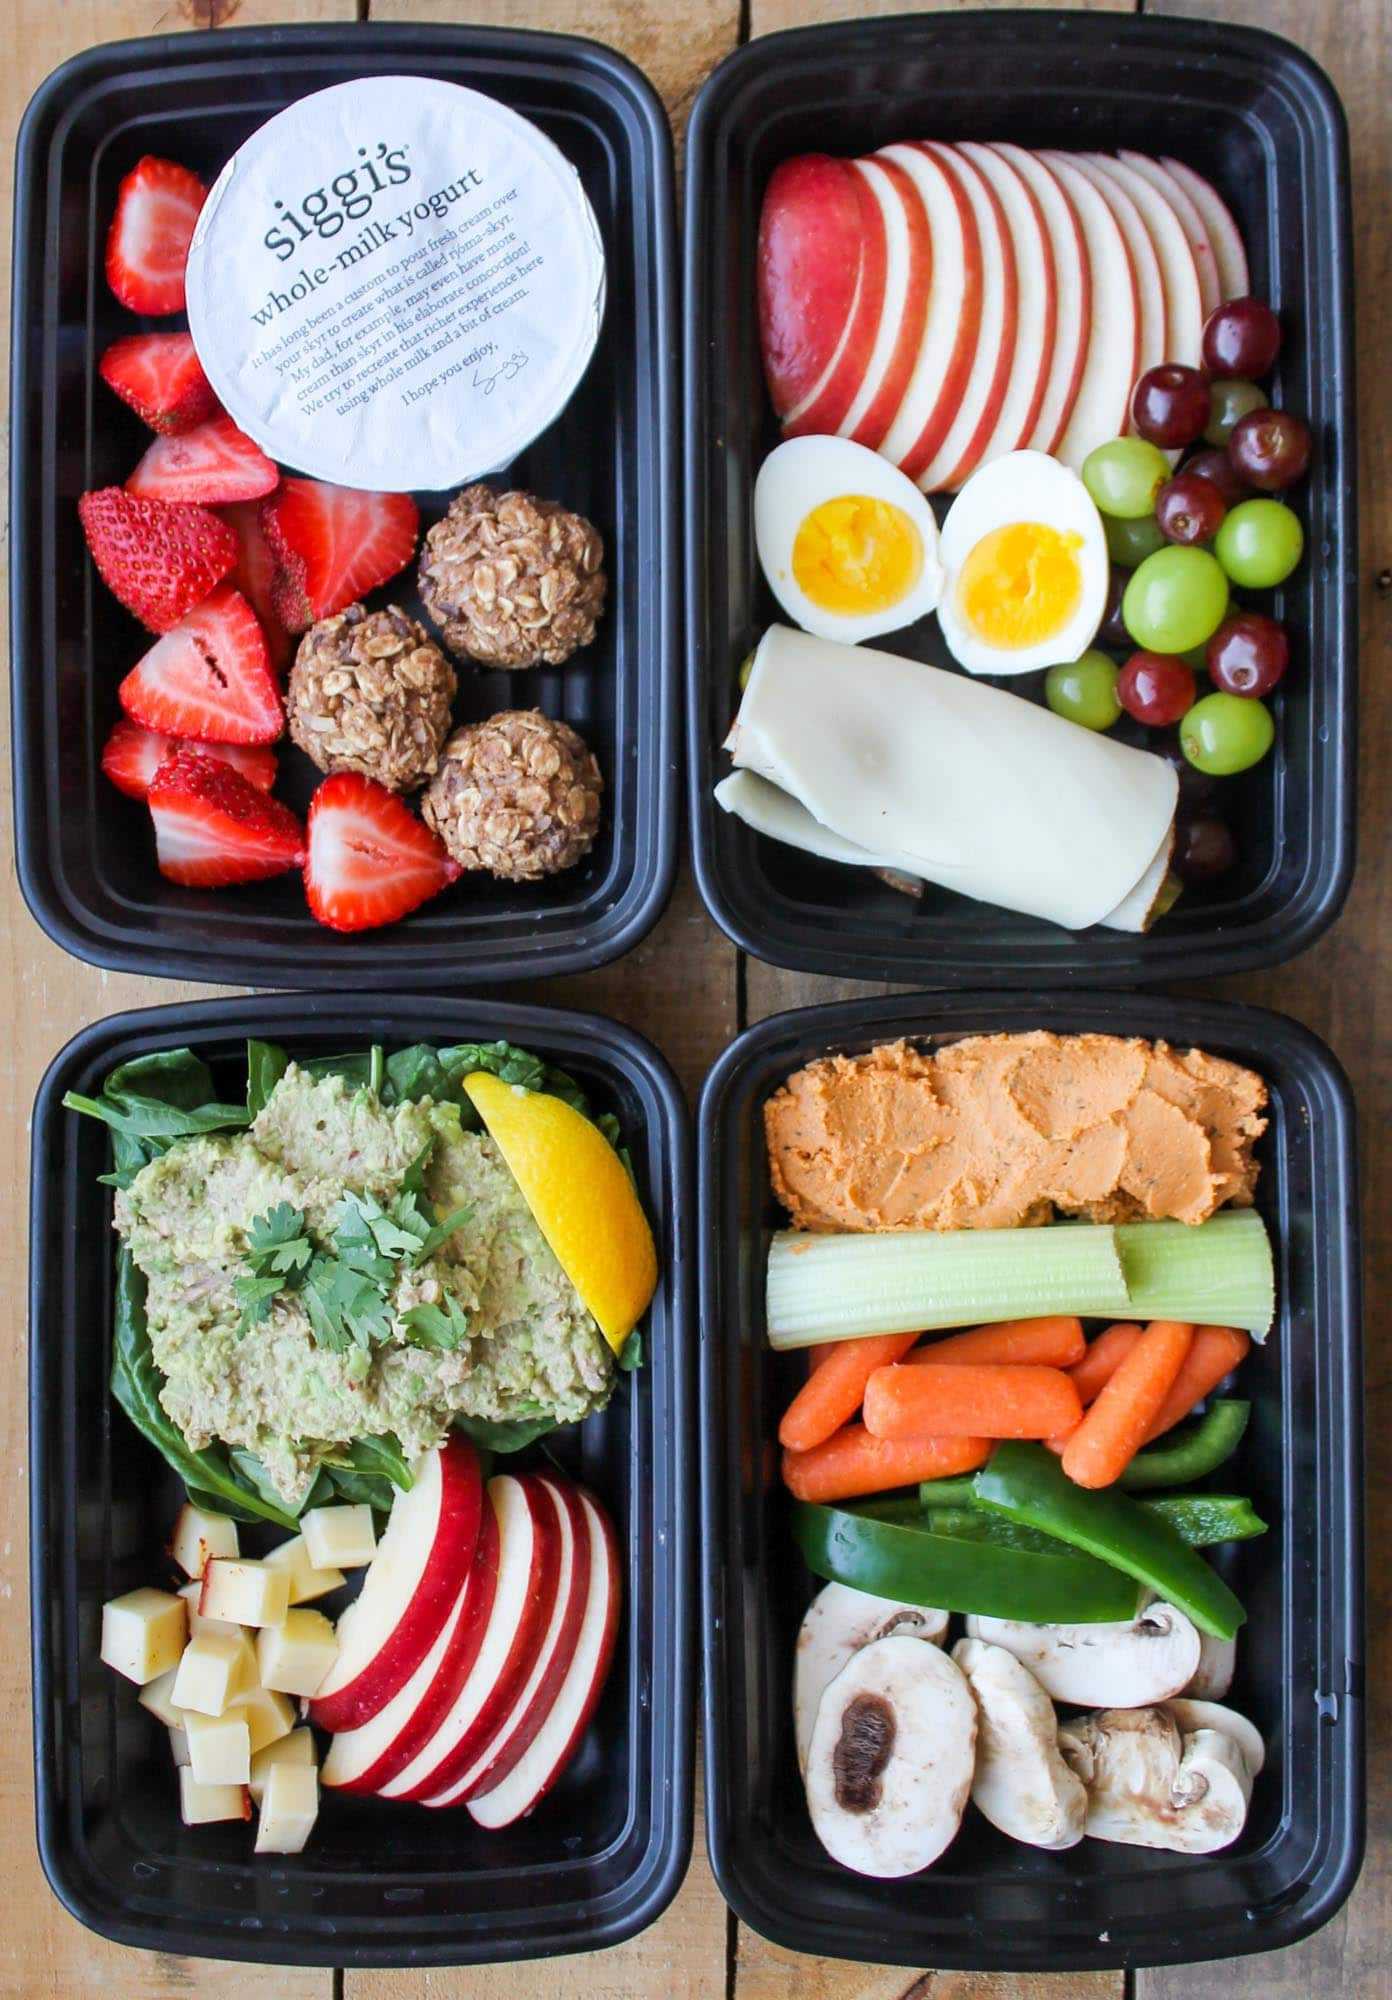 Healthy Foods And Snacks  4 Healthy Snack Box Ideas Smile Sandwich